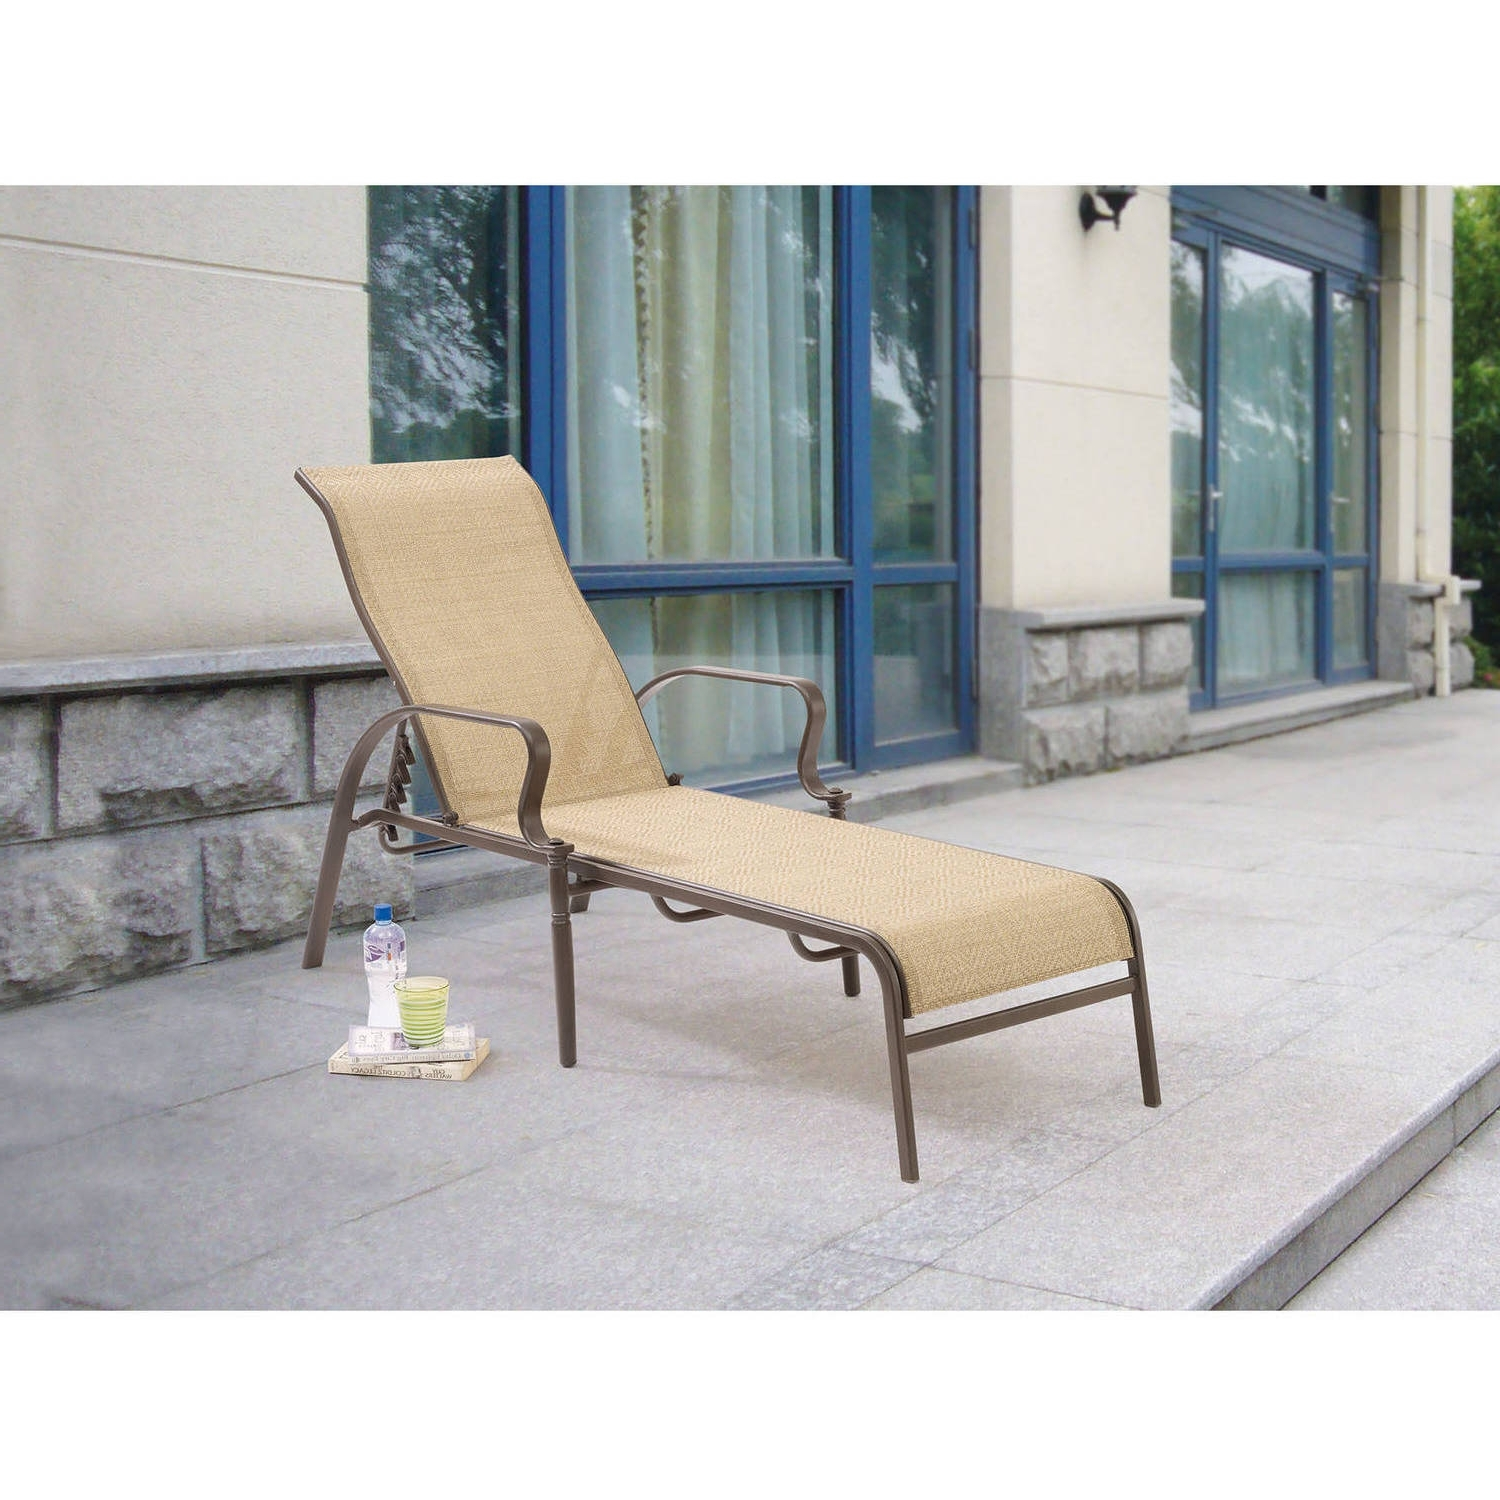 Mainstays Wesley Creek Sling Outdoor Chaise Lounge – Walmart In Popular Walmart Chaises (View 10 of 15)